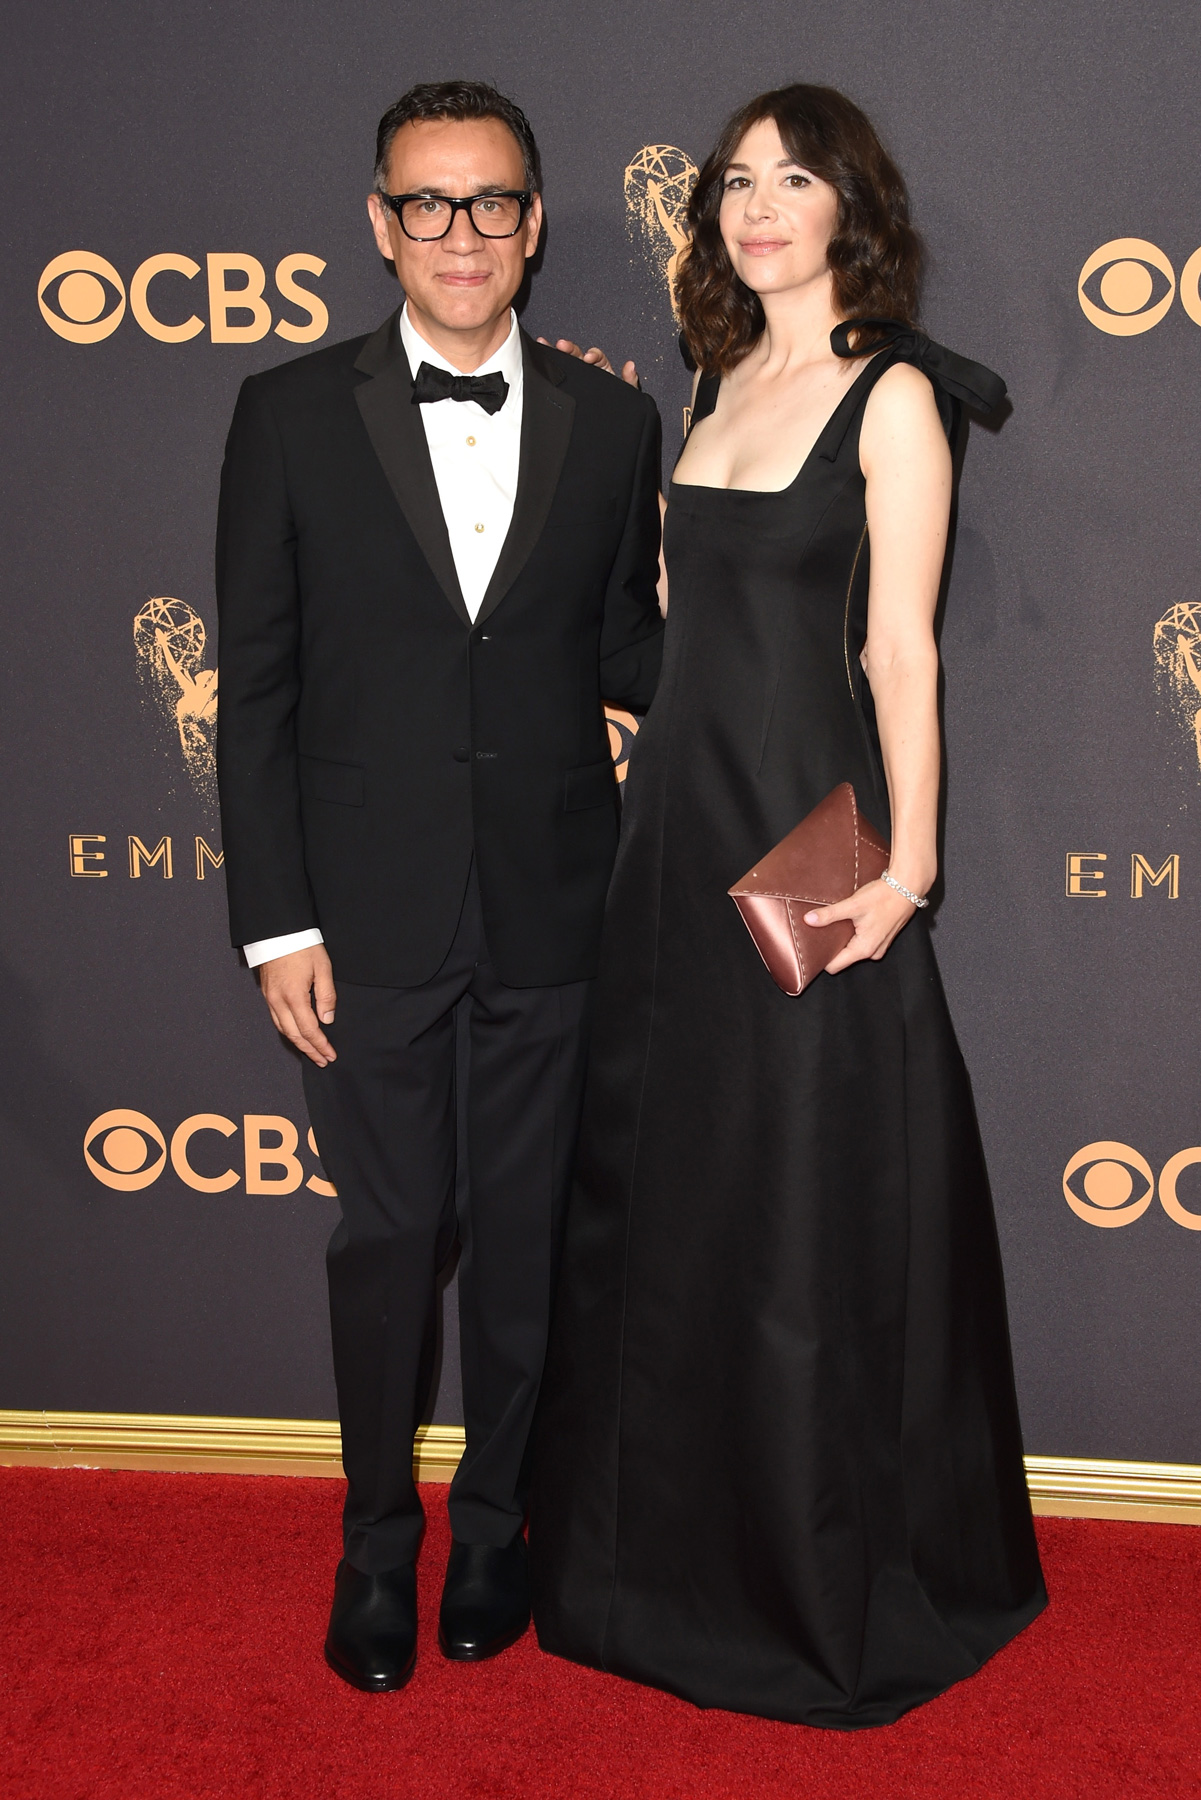 Carrie Brownstein at Emmys